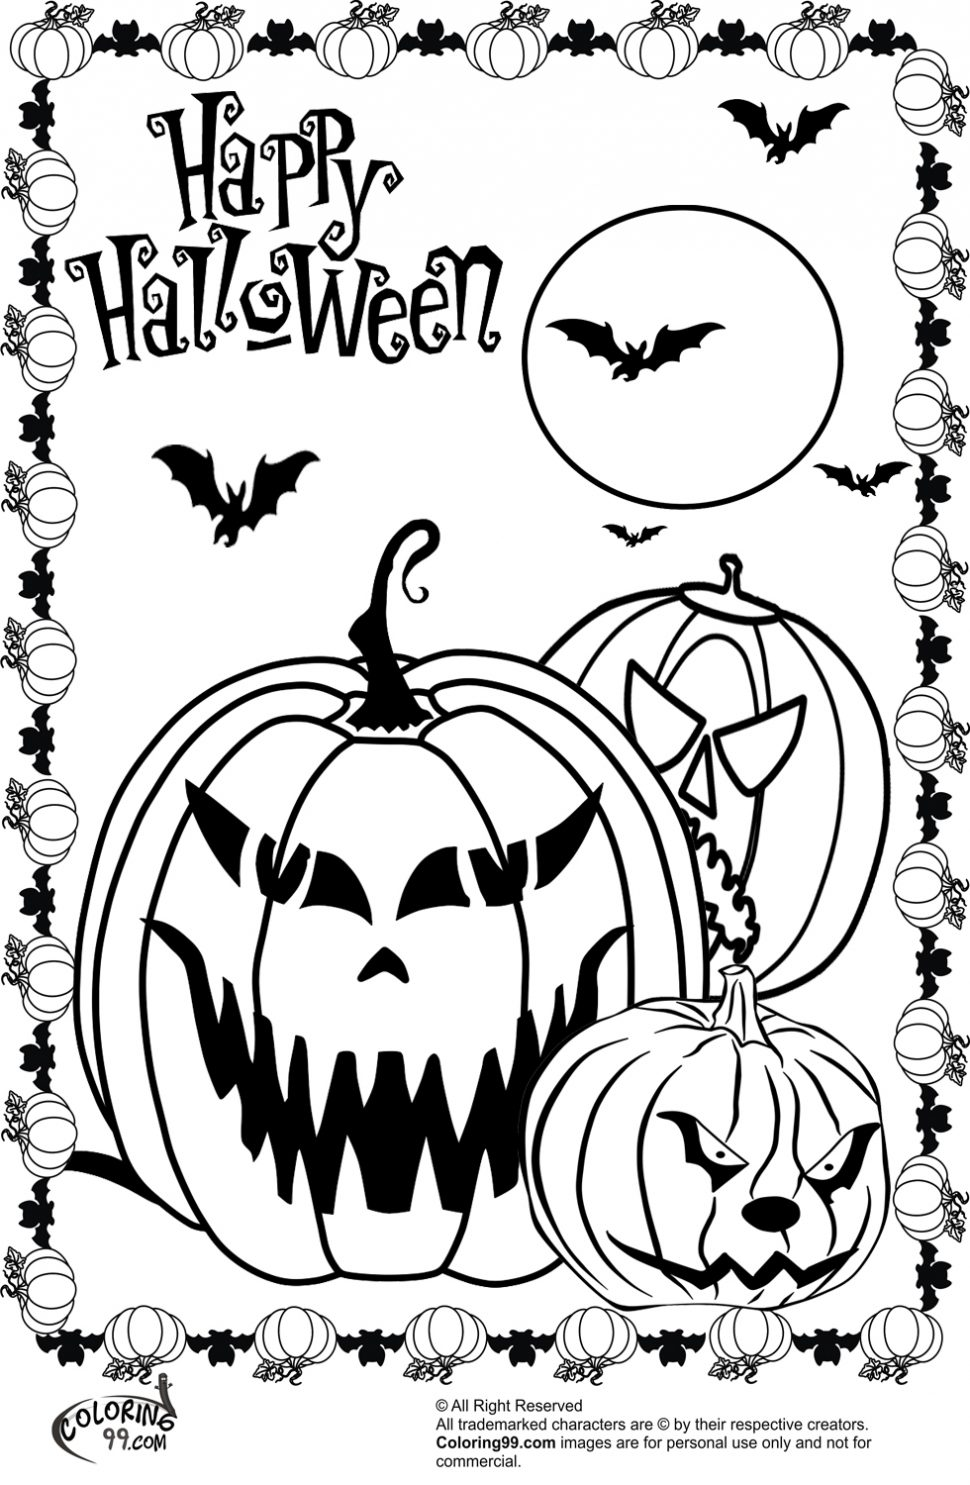 Graffiti Coloring Pages | Free download best Graffiti Coloring Pages ...